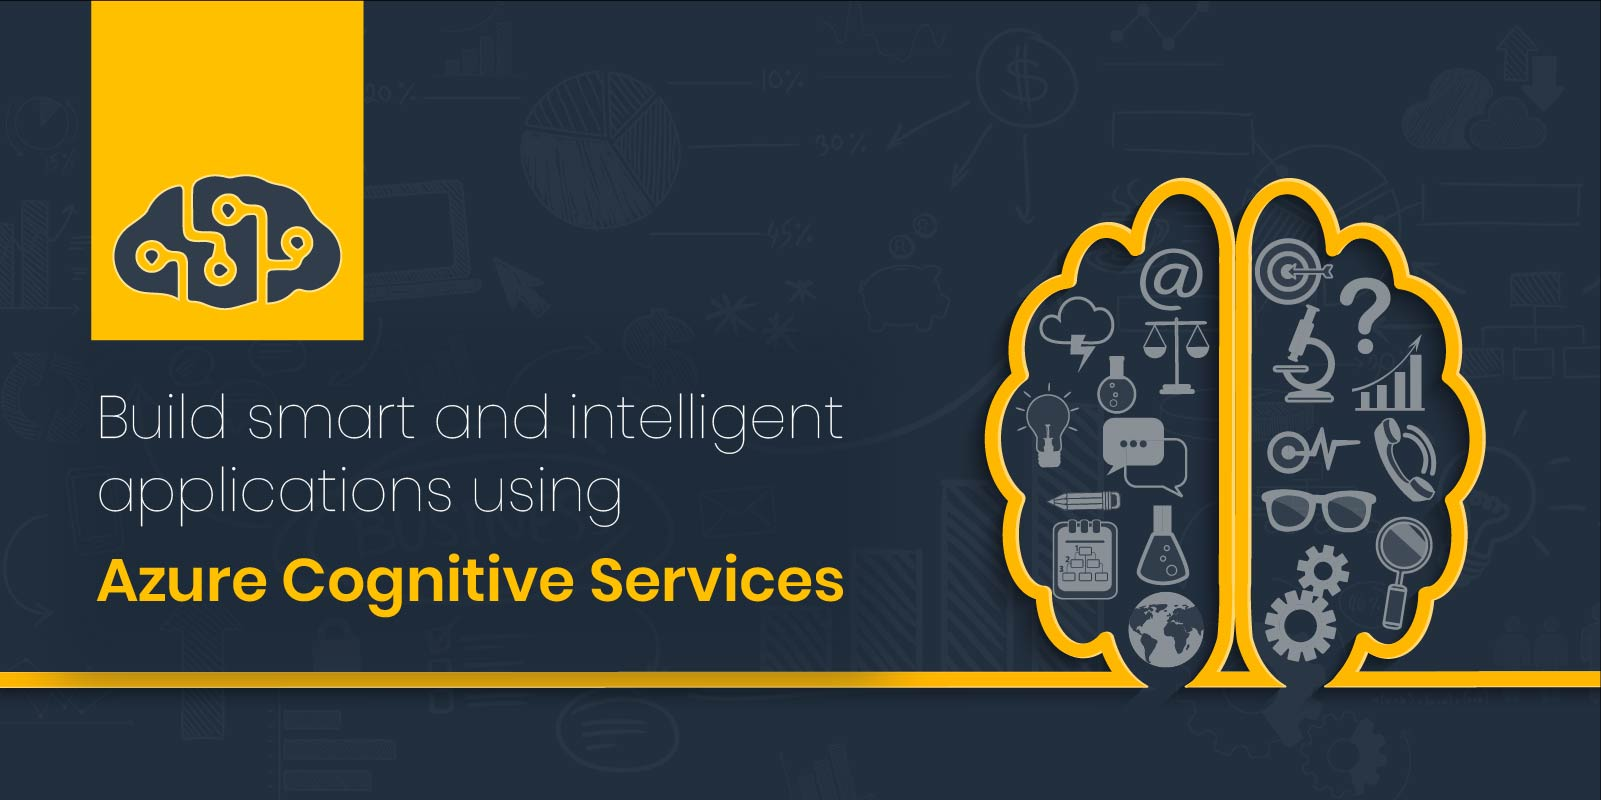 Why you should use Microsoft Azure Cognitive Services for application development?